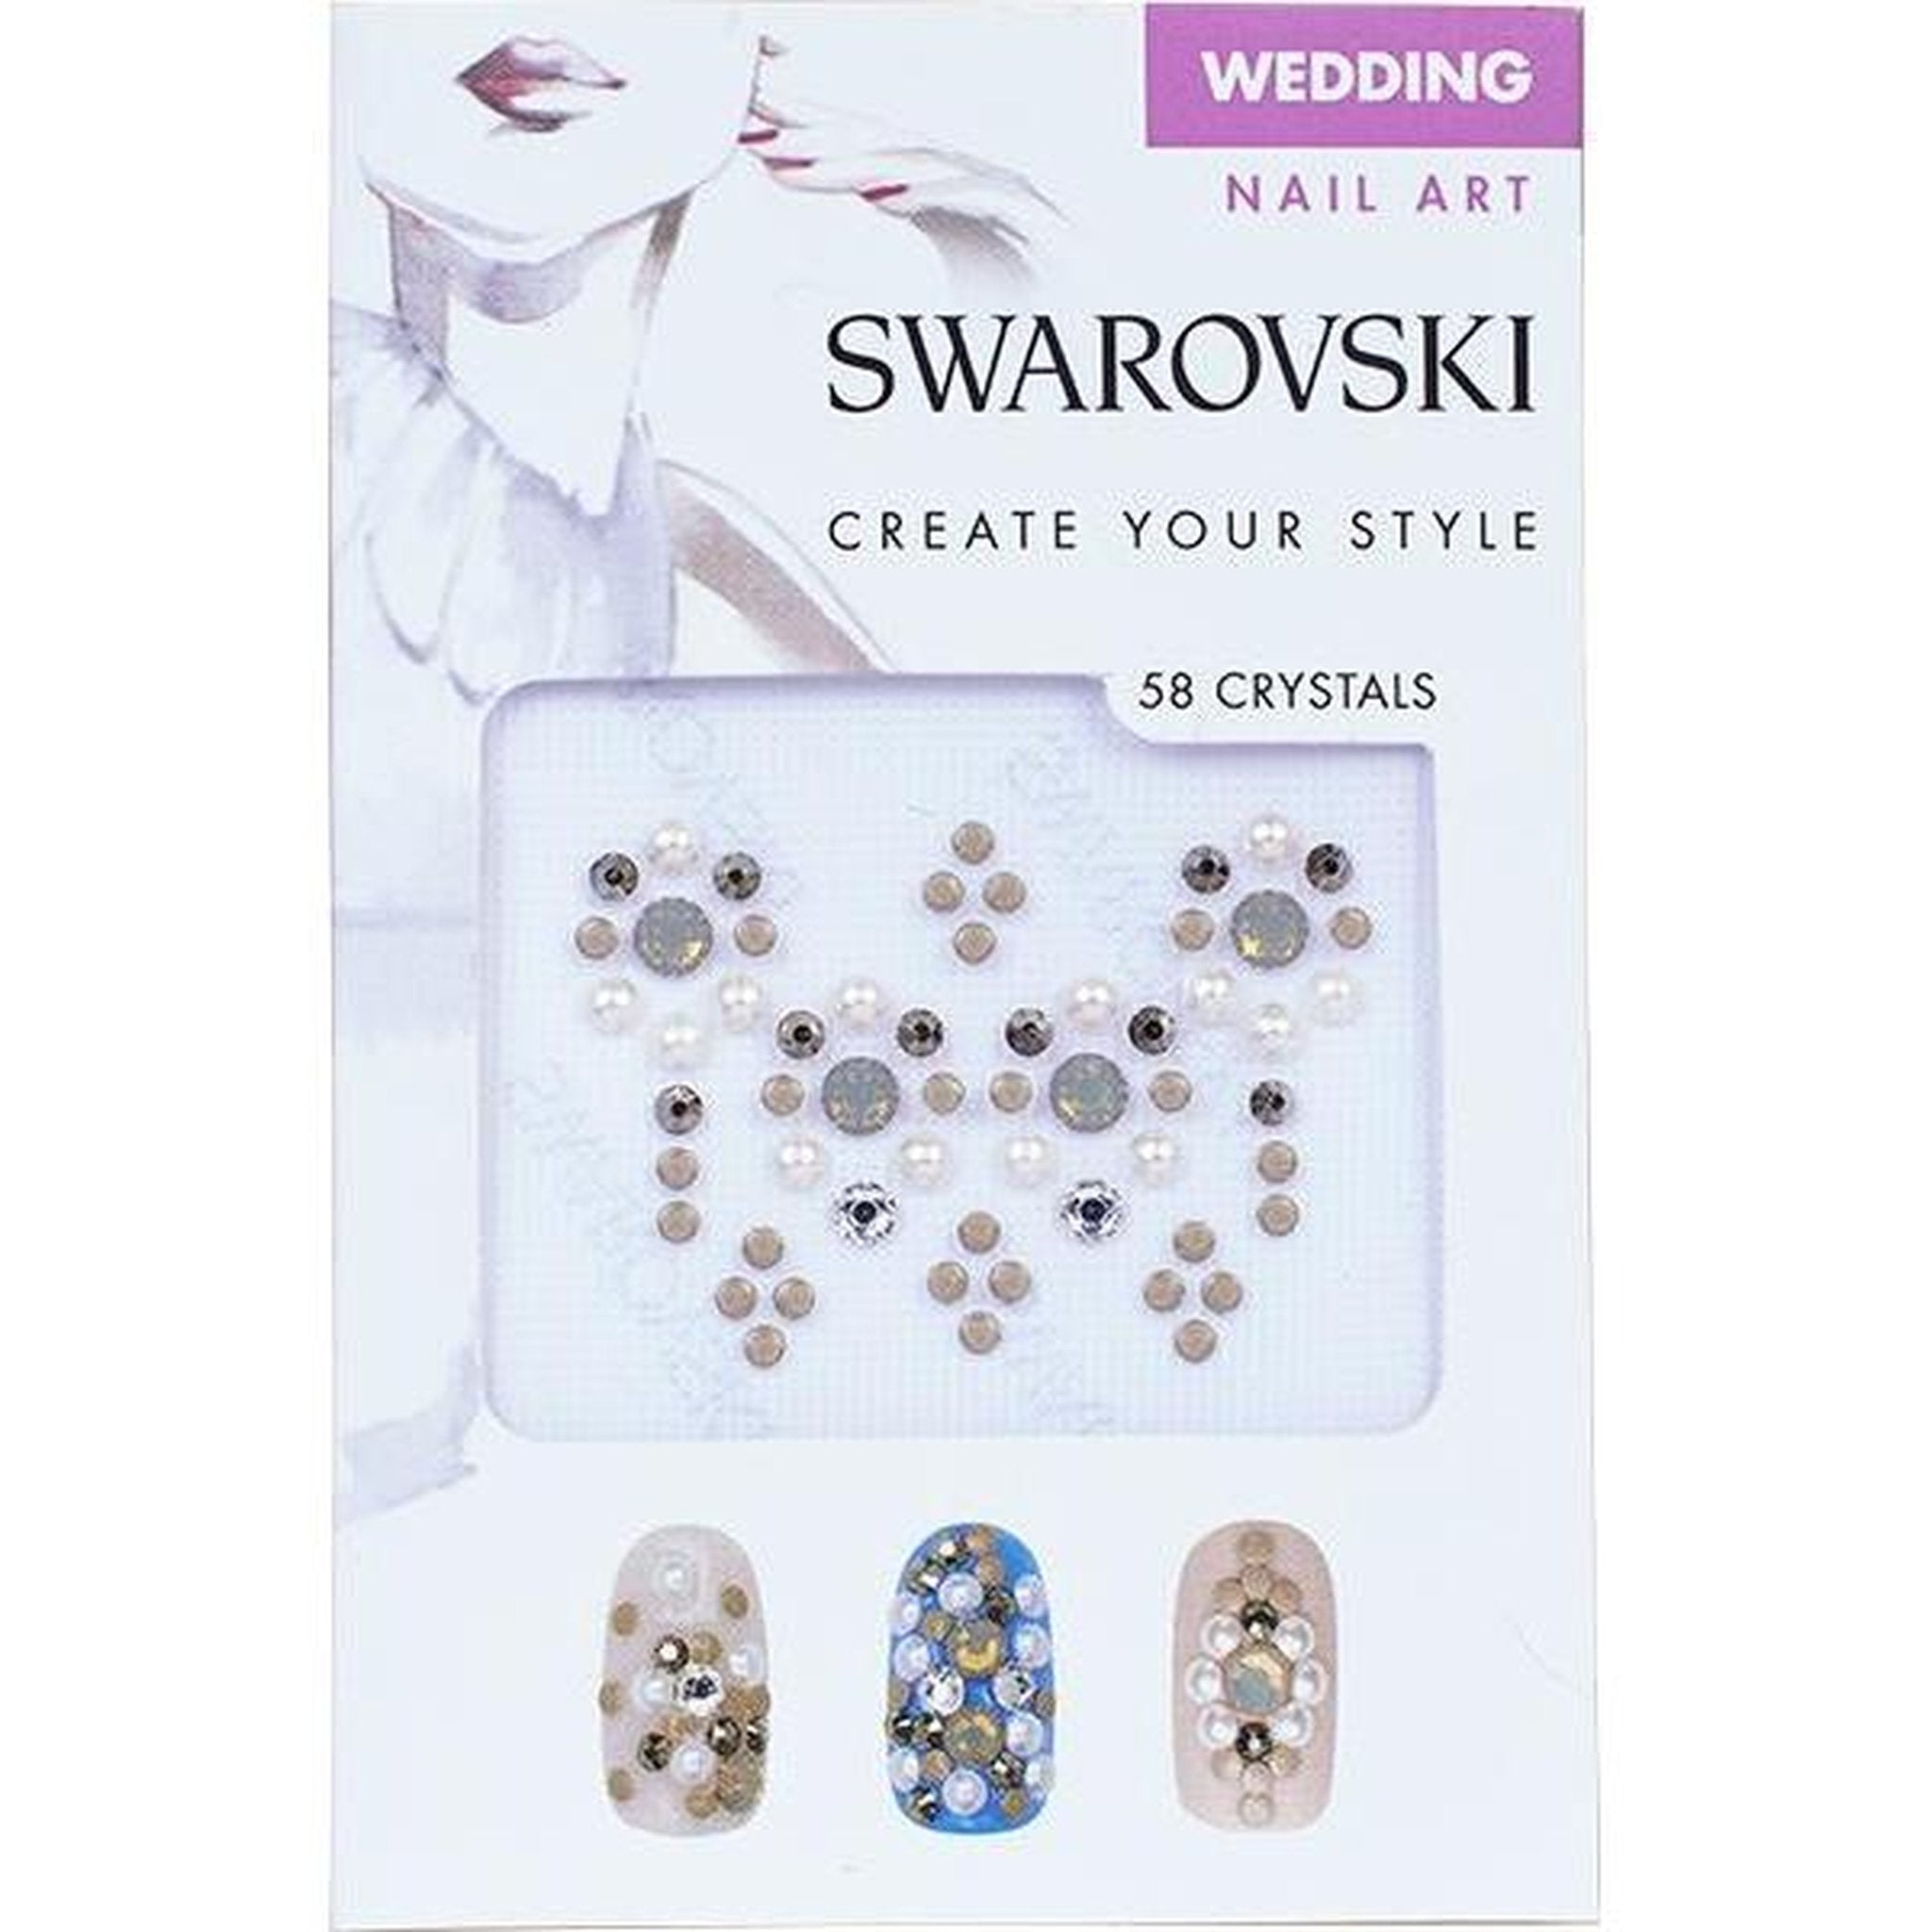 SWAROVSKI NAIL ART CRYSTAL TRANSFERS - WEDDING SET 2-Gel Essentialz